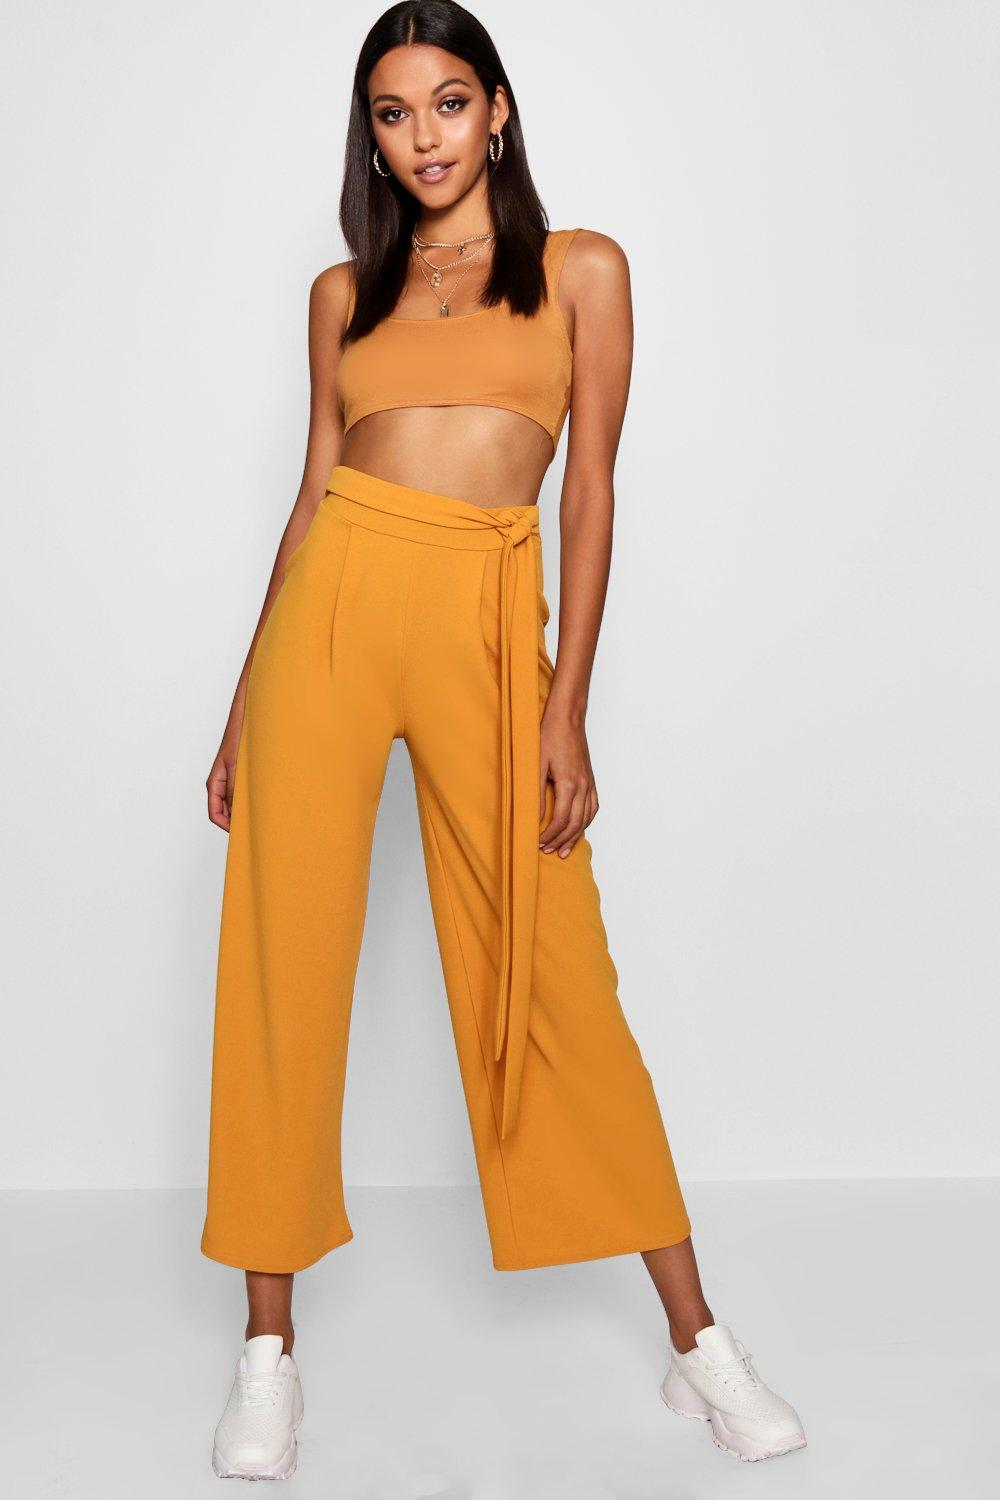 Belted Tall Tall Tall Culottes yellow yellow yellow Culottes yellow Belted Belted Culottes Tall Belted Culottes Tall fpYH7q